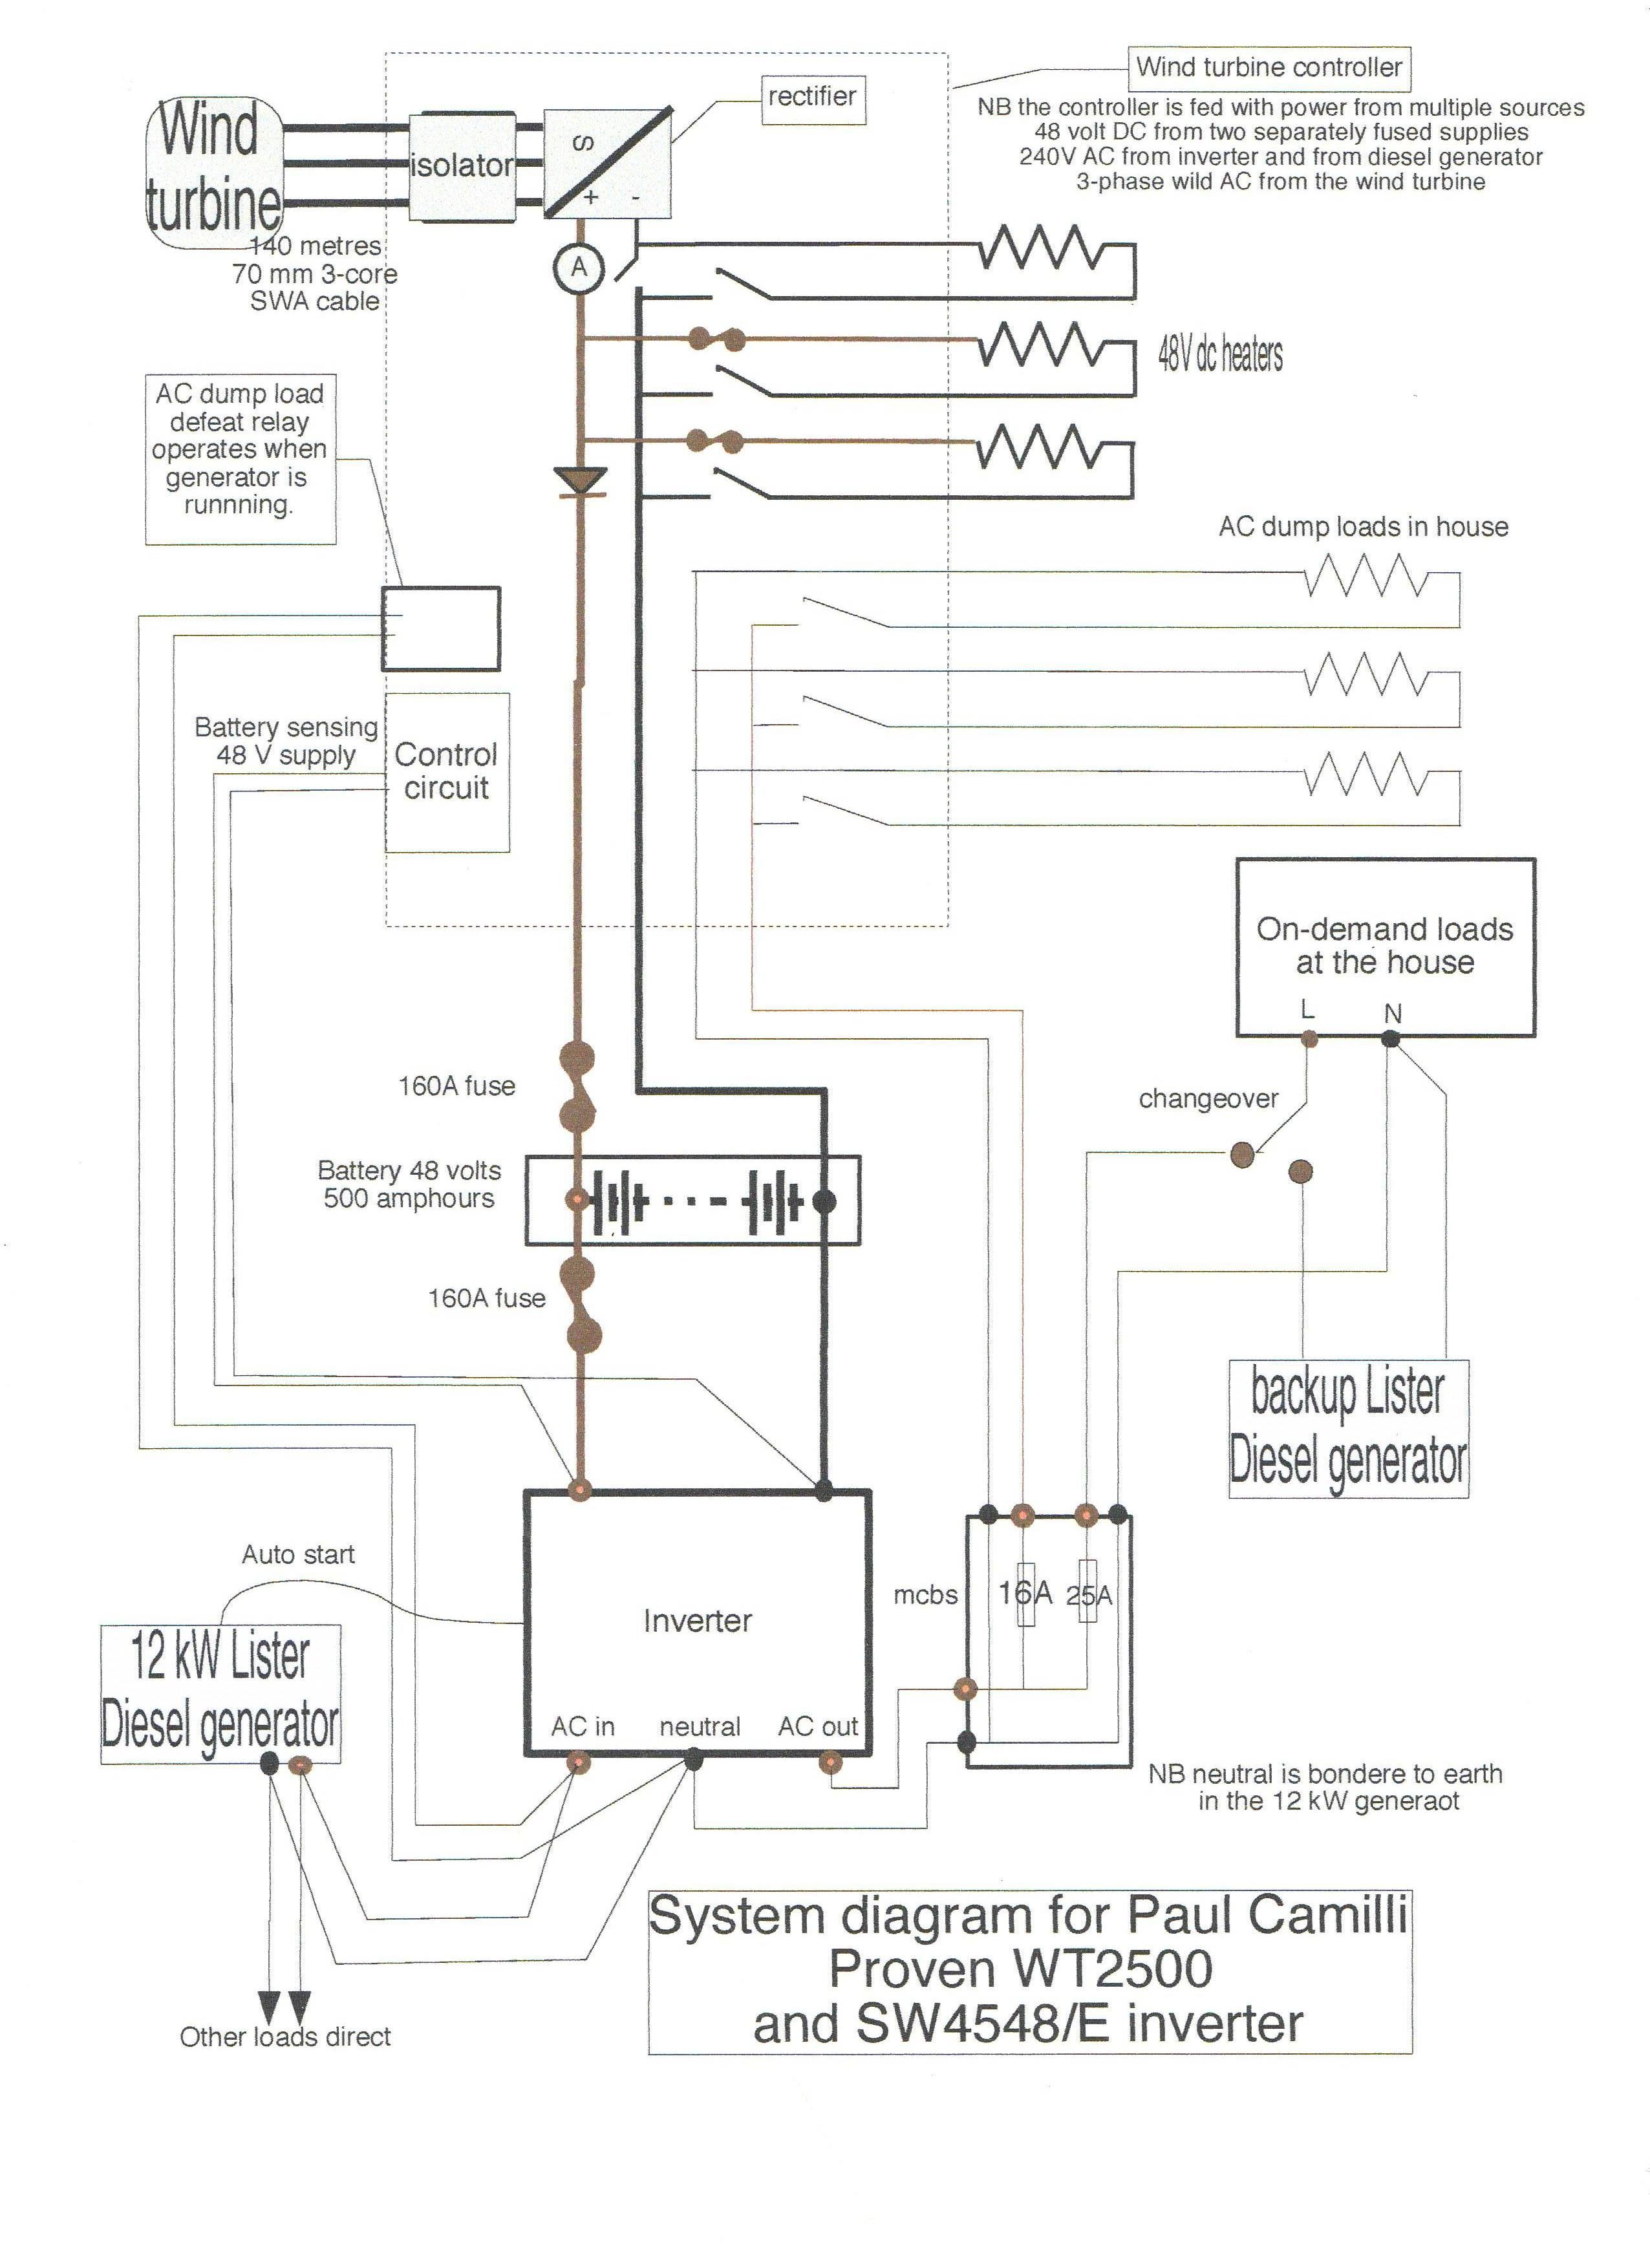 hight resolution of wind turbine wiring diagram homesteading pinterest wind rh pinterest com wind turbine blades wind turbine diagram